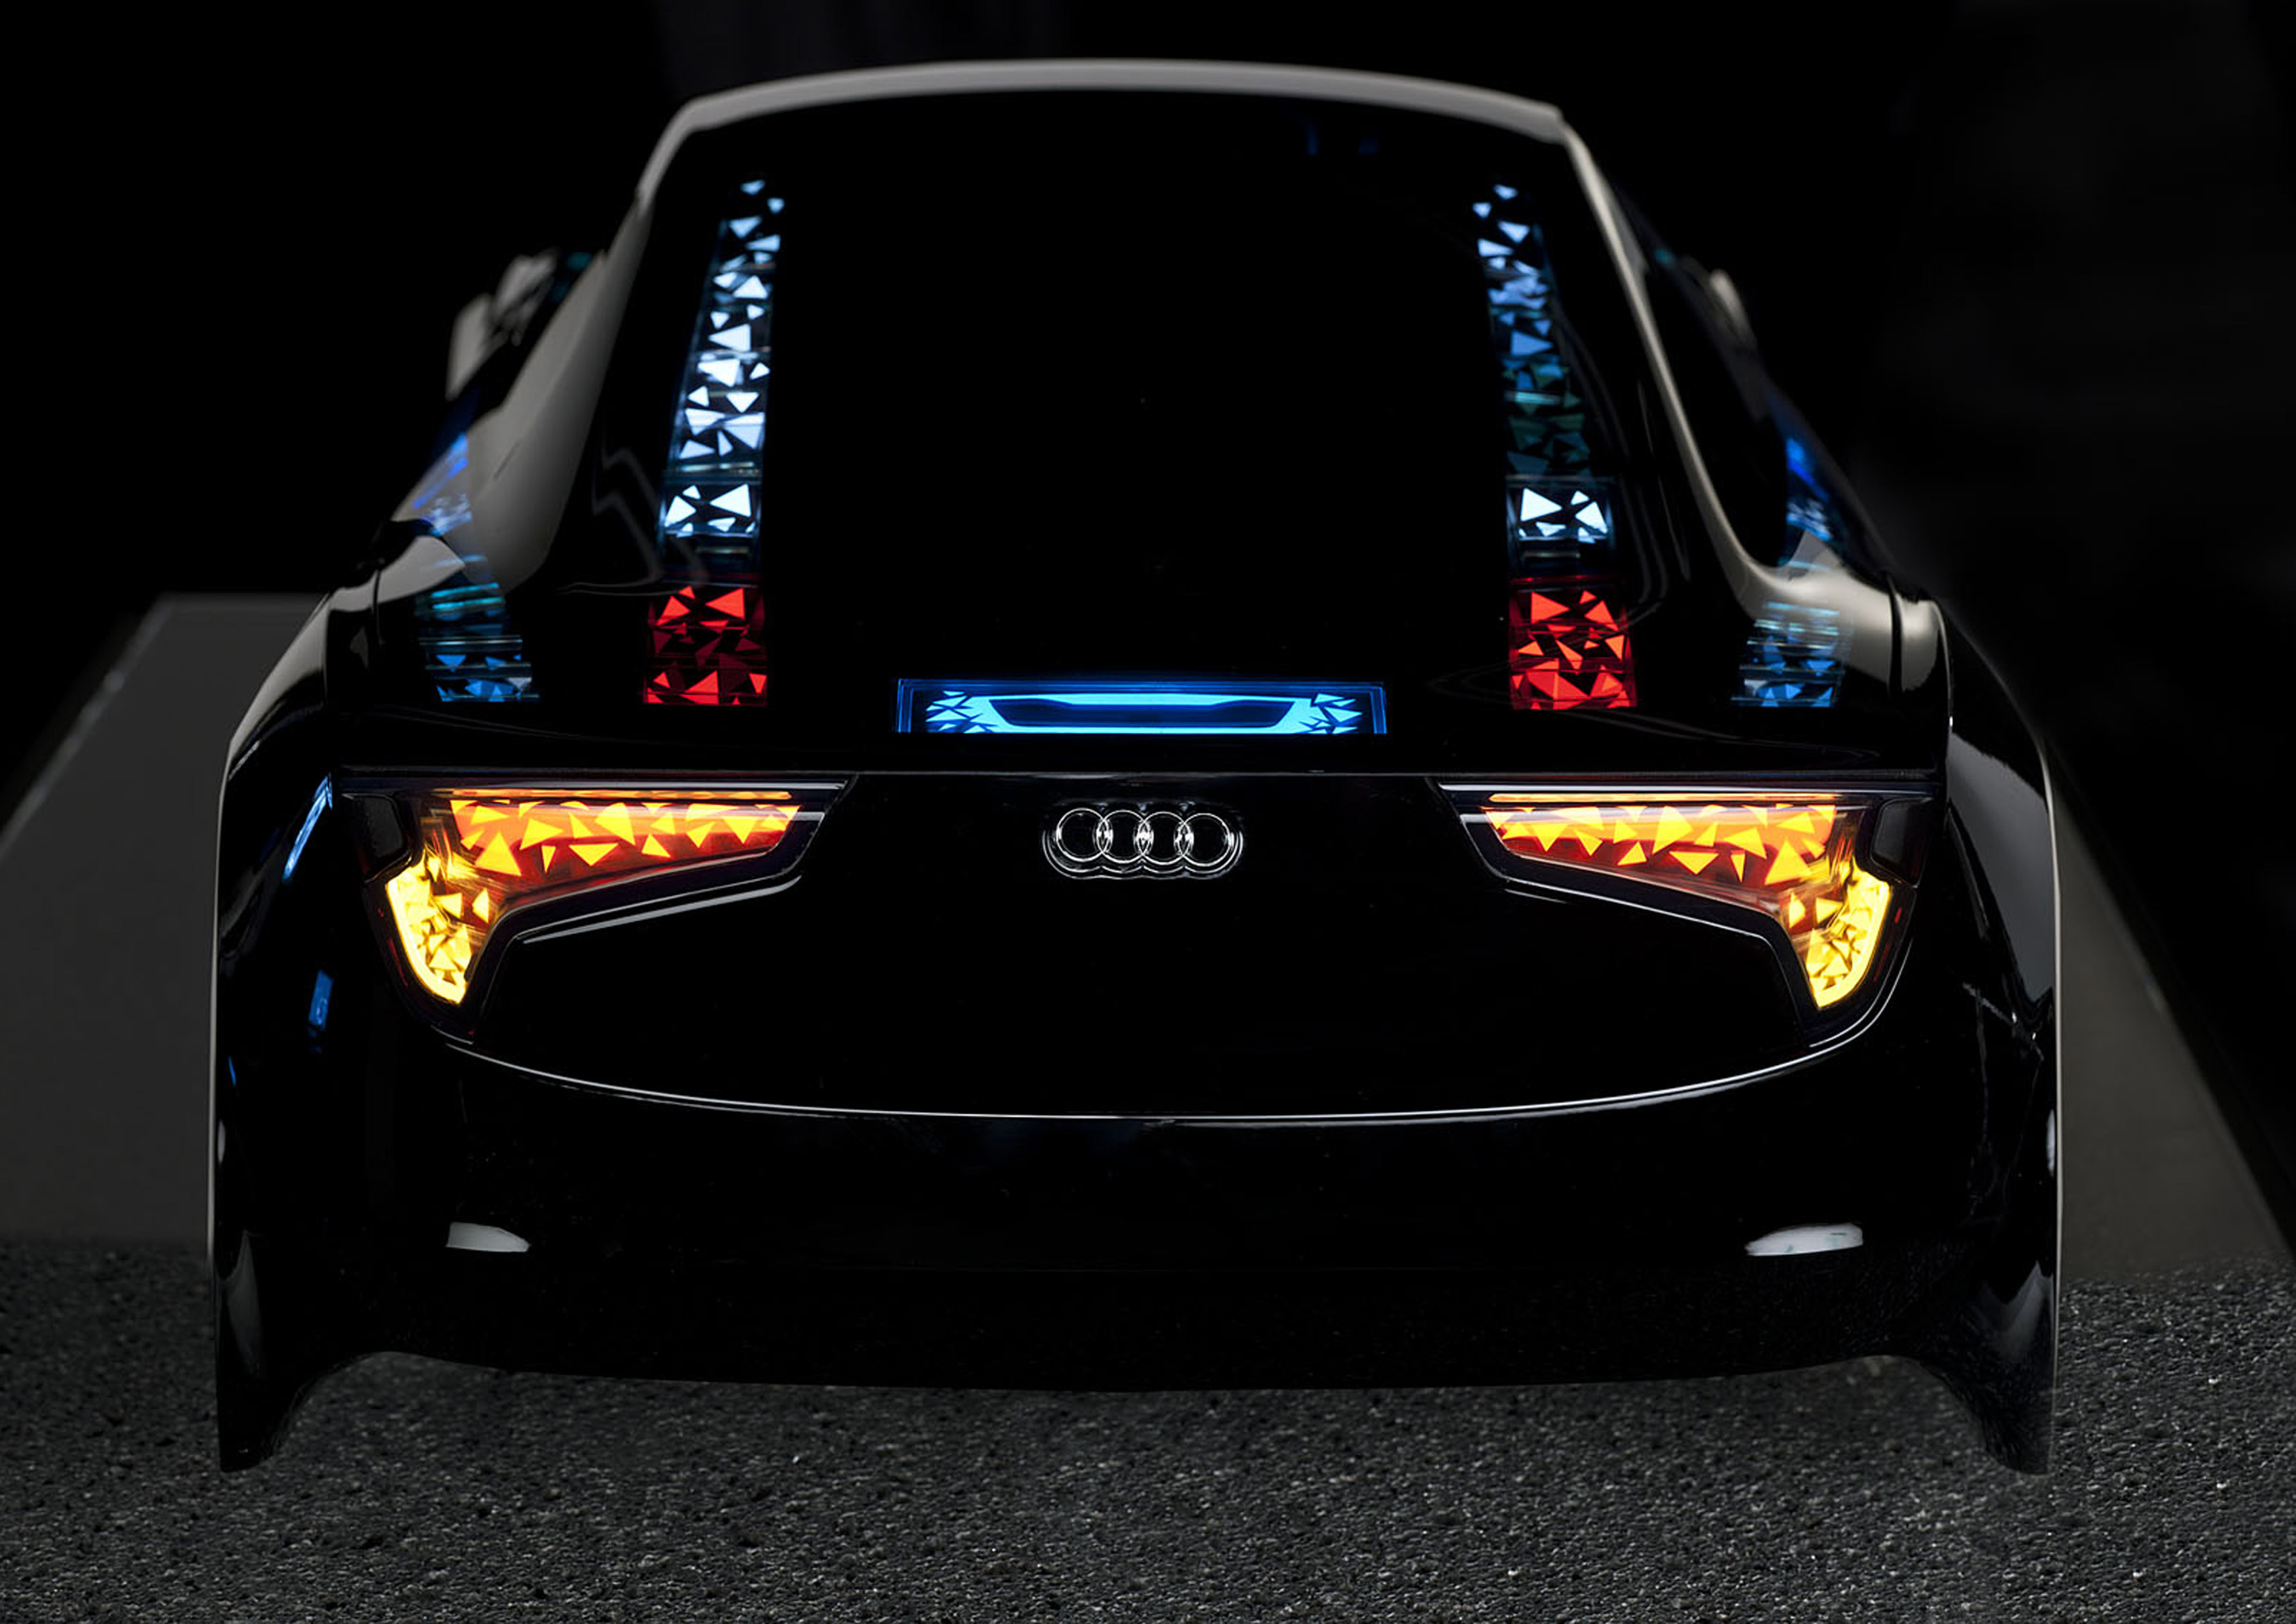 Audi S Next Generation Of Head And Tail Lights Coming Soon